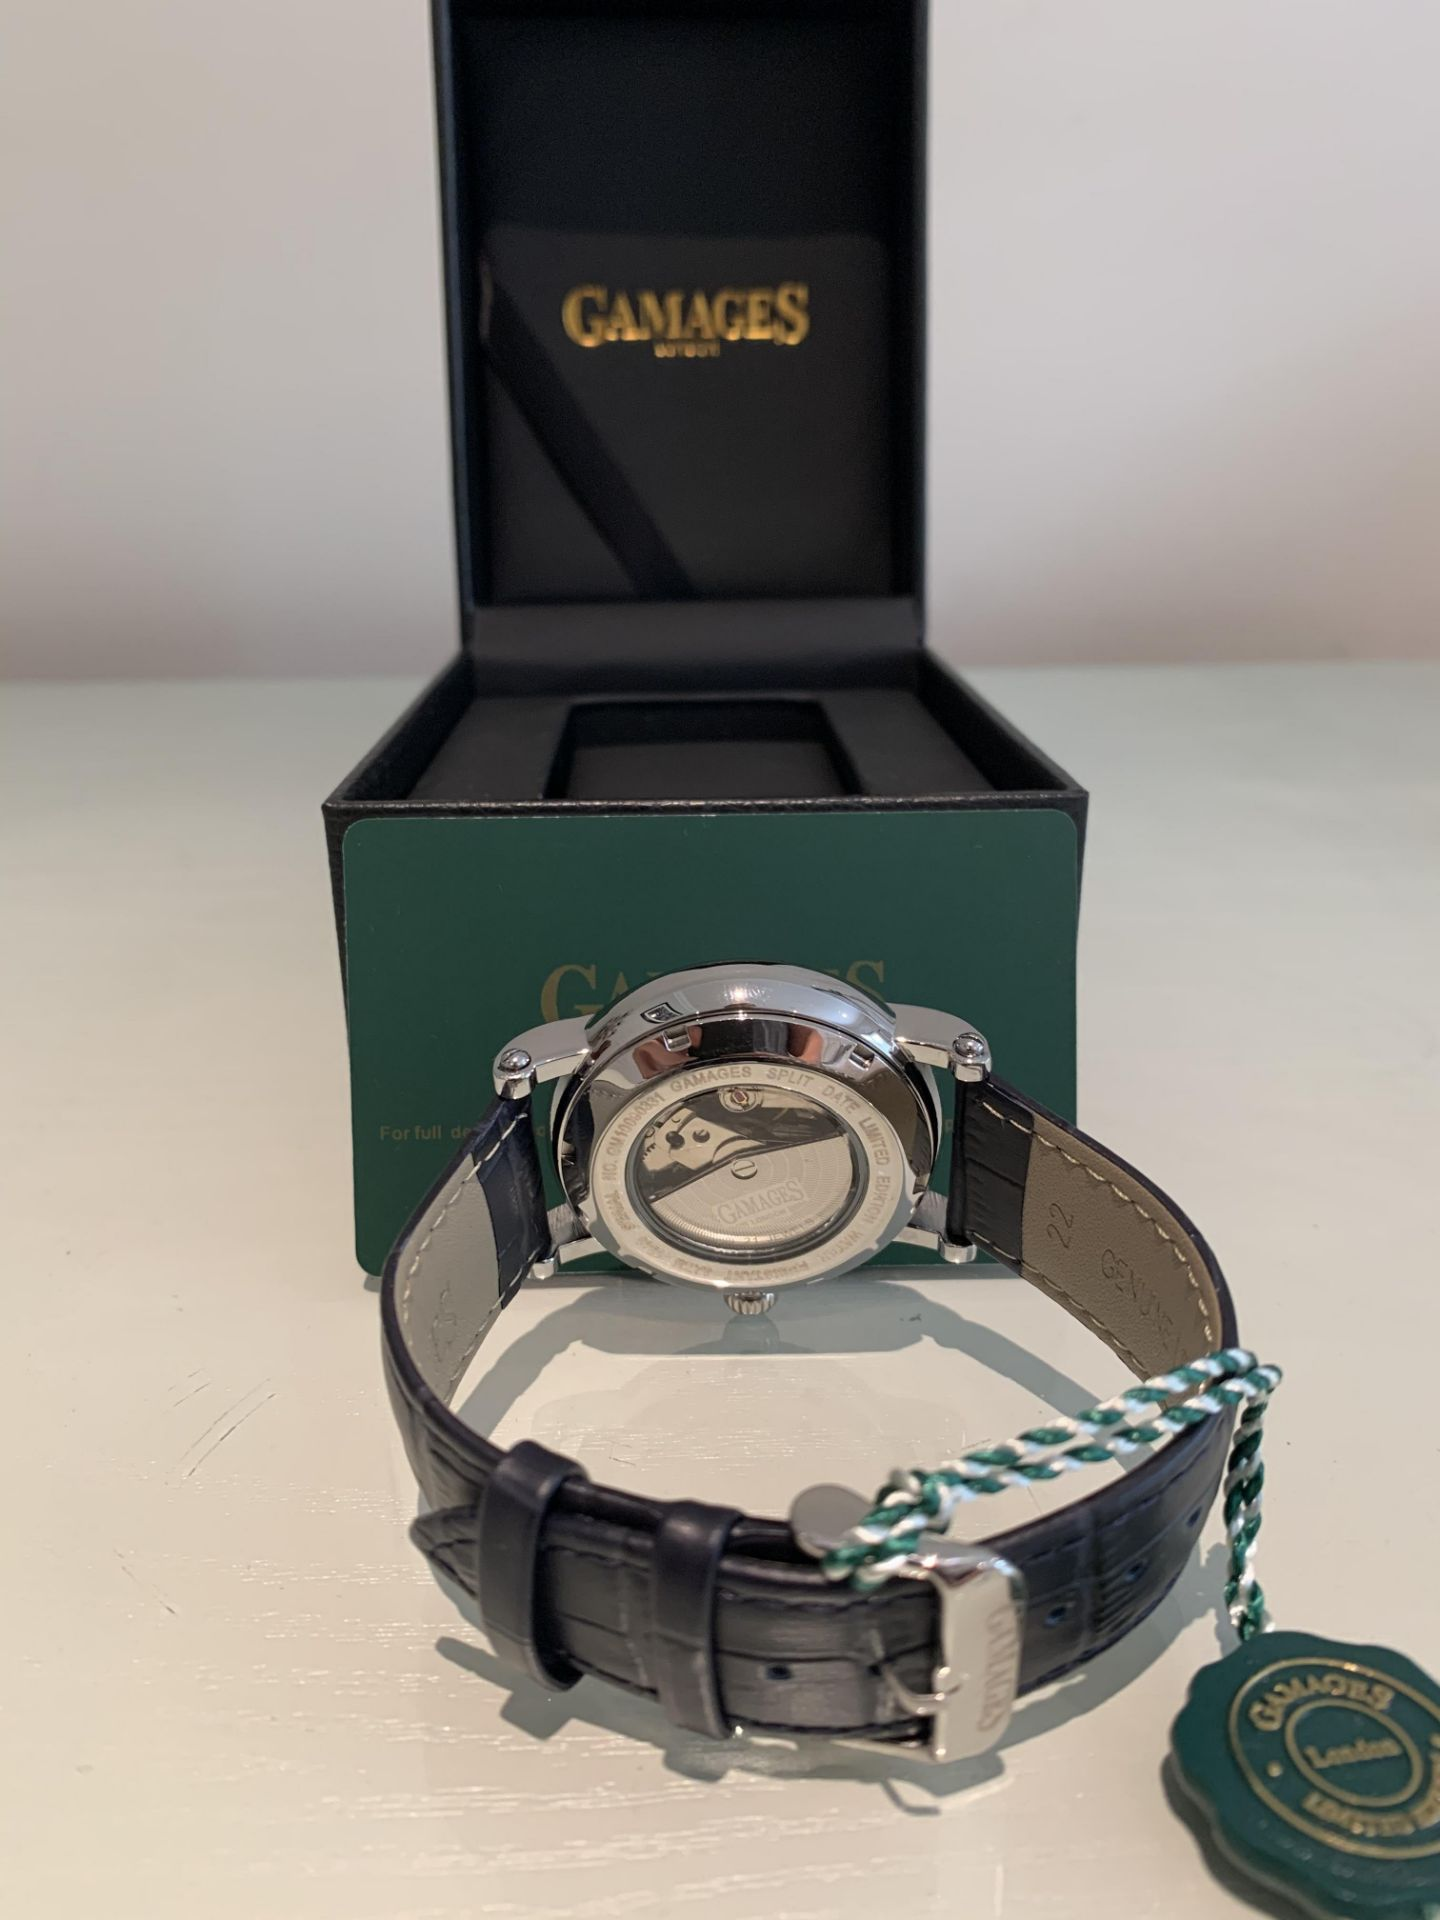 Limited Edition Hand Assembled Gamages Split Date Automatic Steel – 5 Year Warranty & Free Delivery - Image 5 of 5